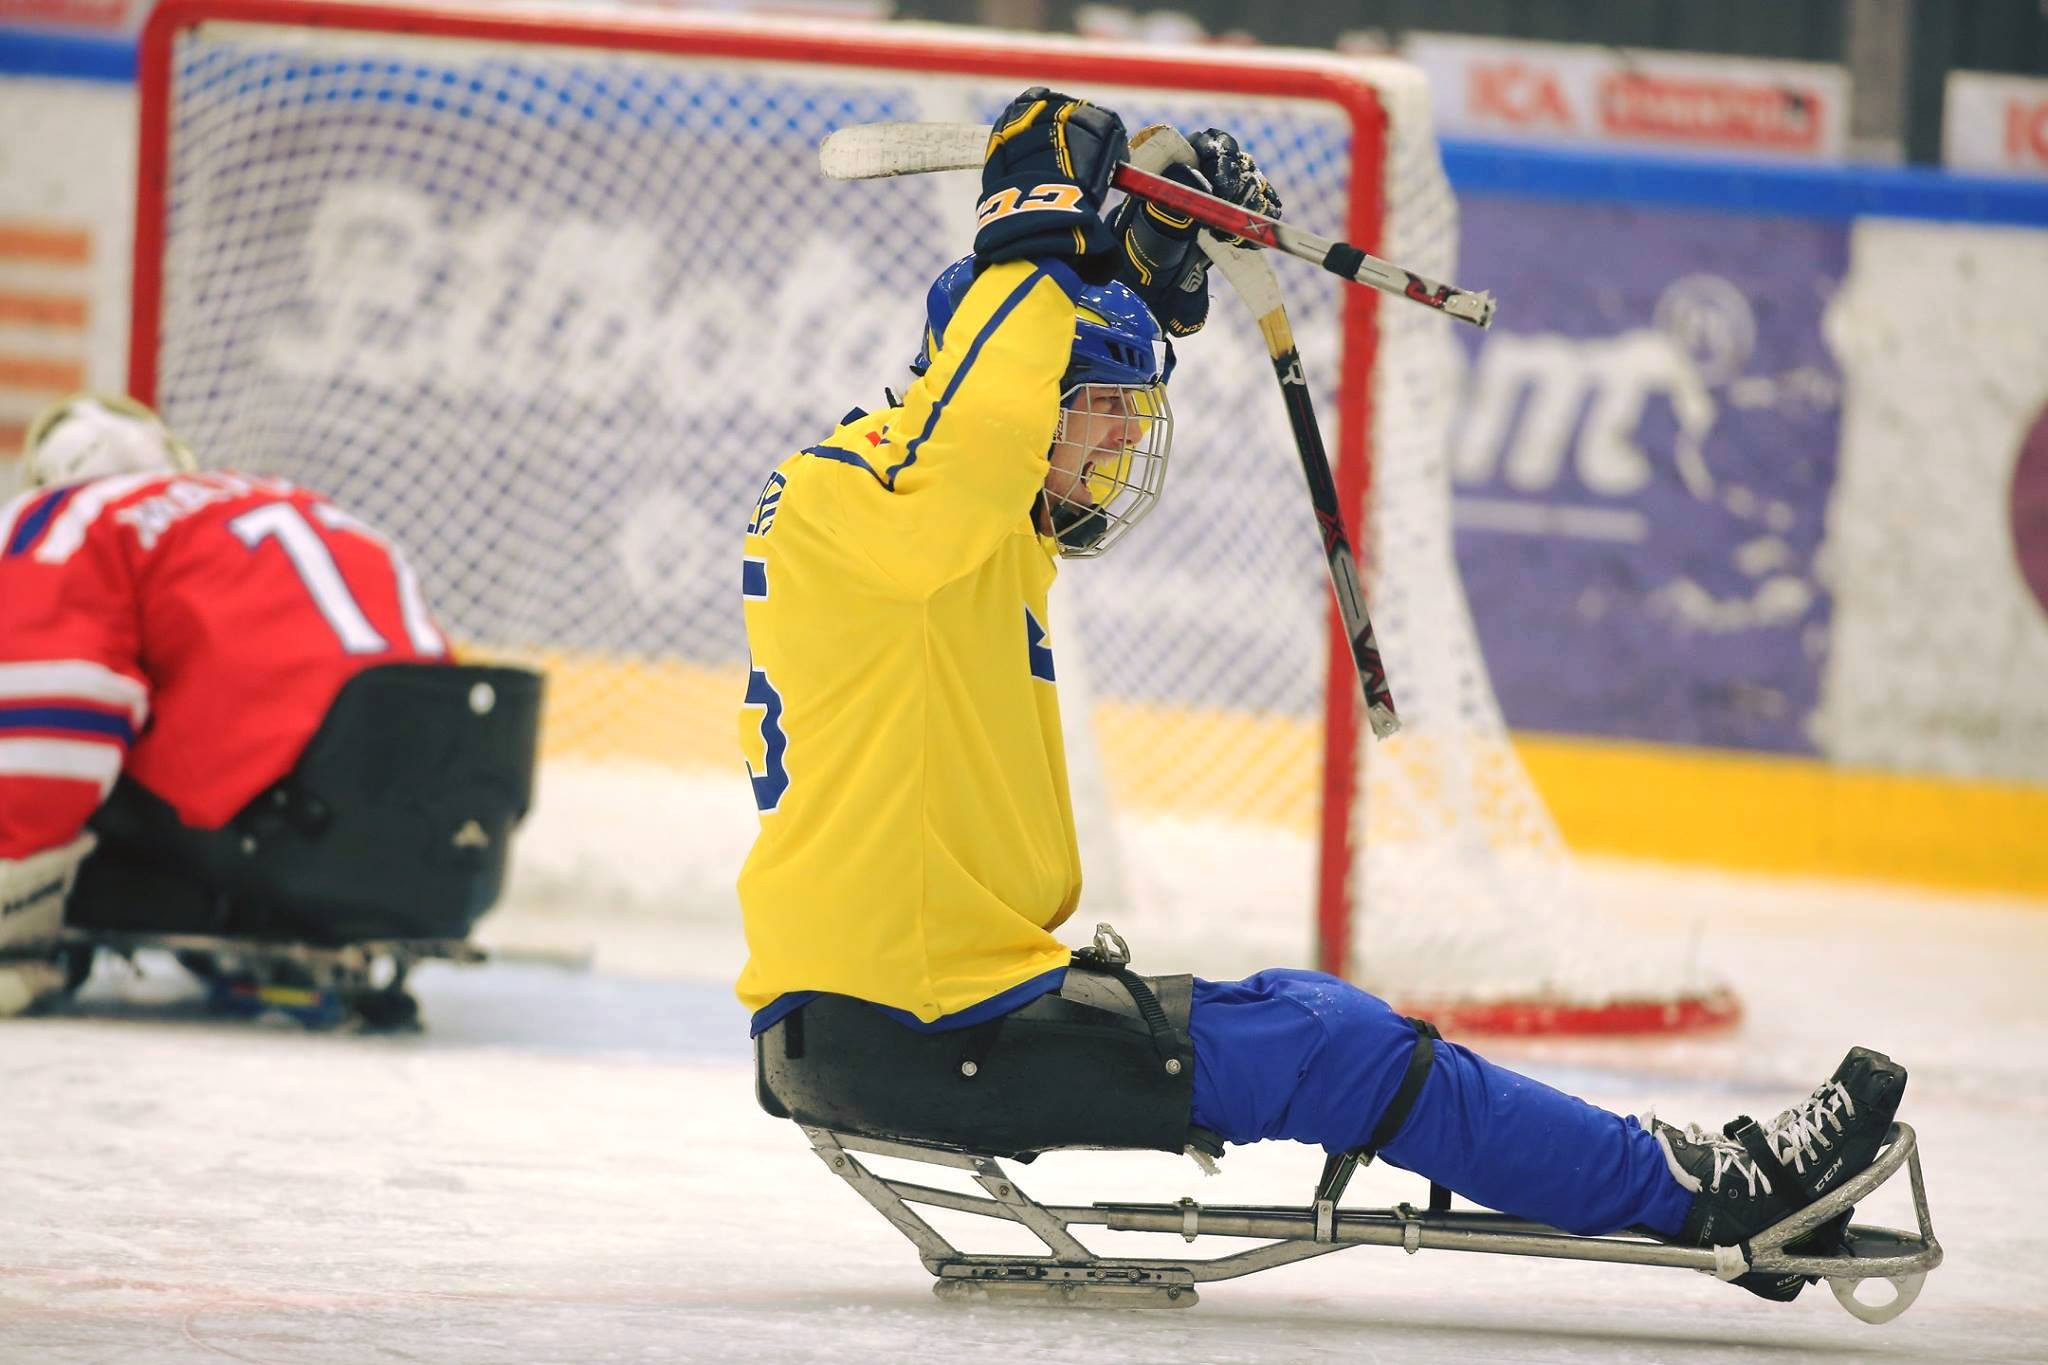 Sweden beat Germany to qualify for Pyeongchang 2018 Para ice hockey tournament